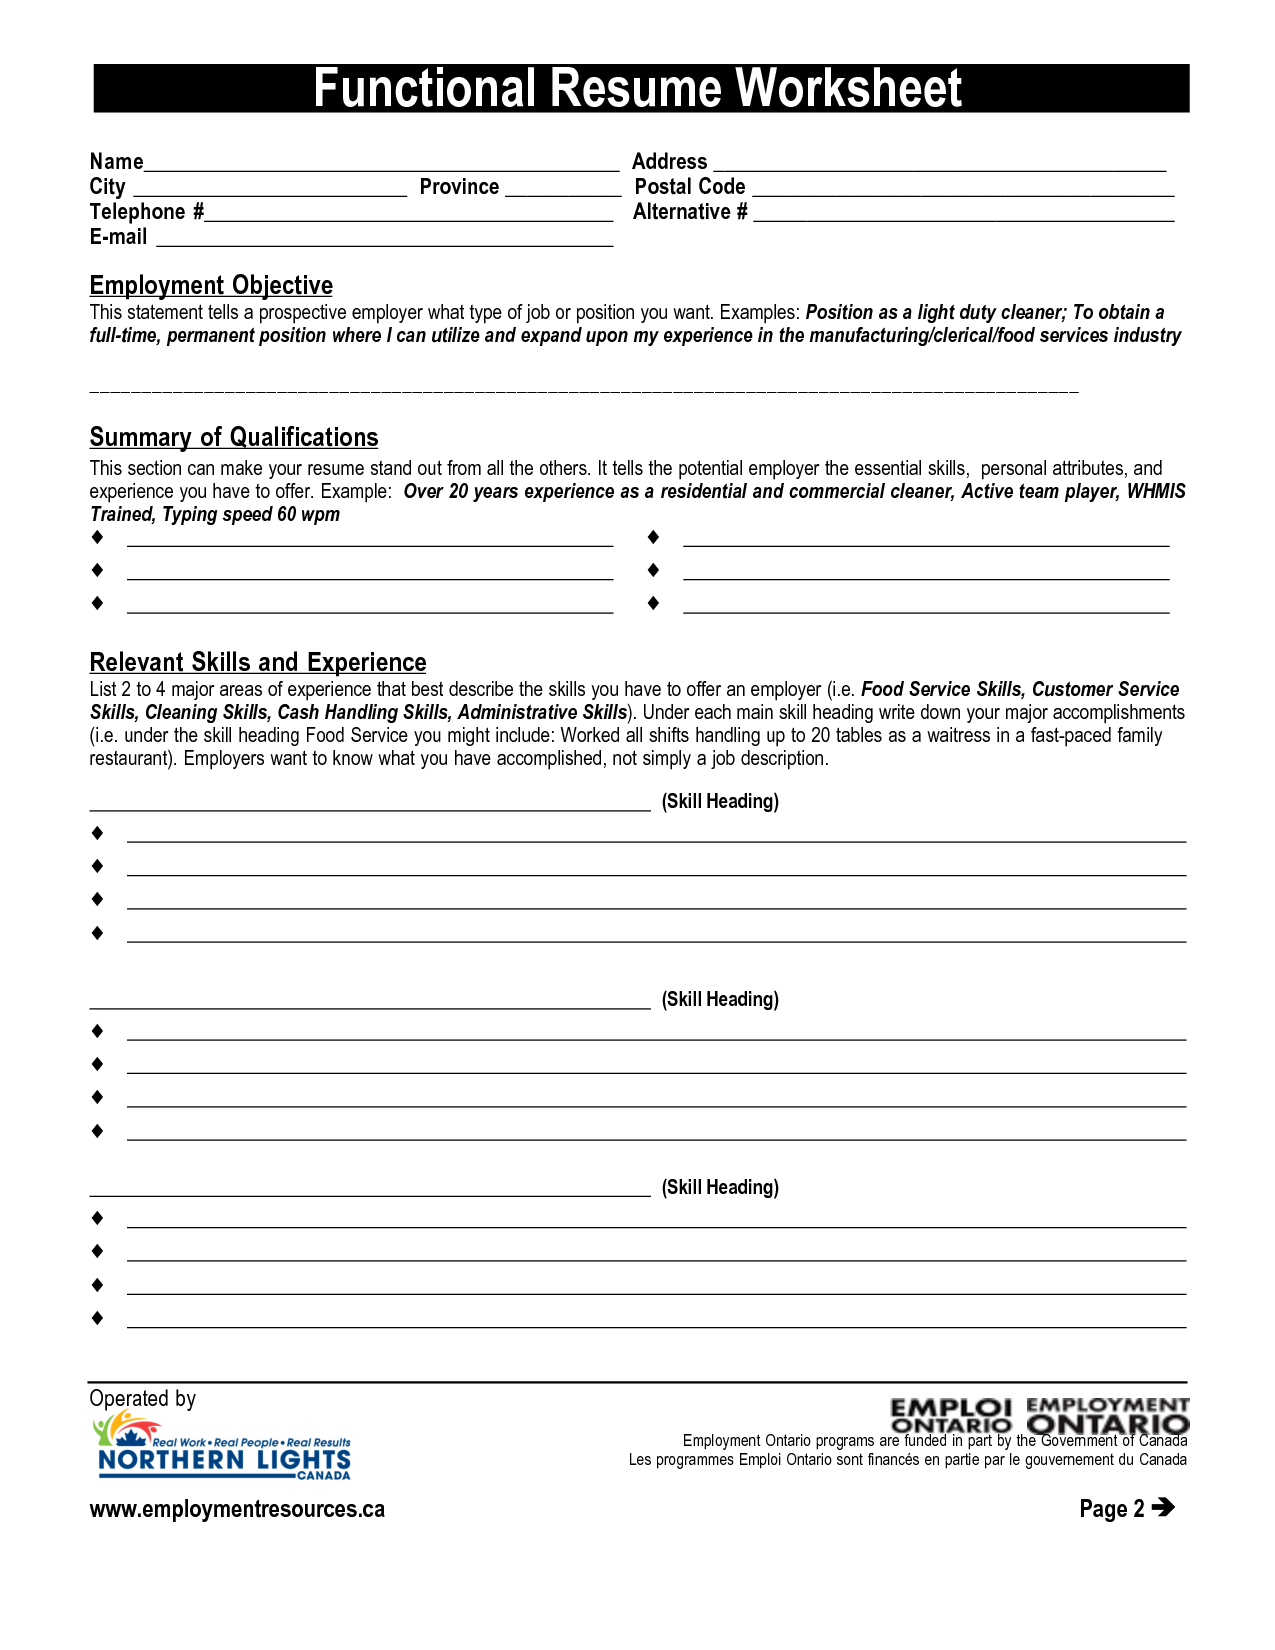 Resume Worksheet Printable And High School Template